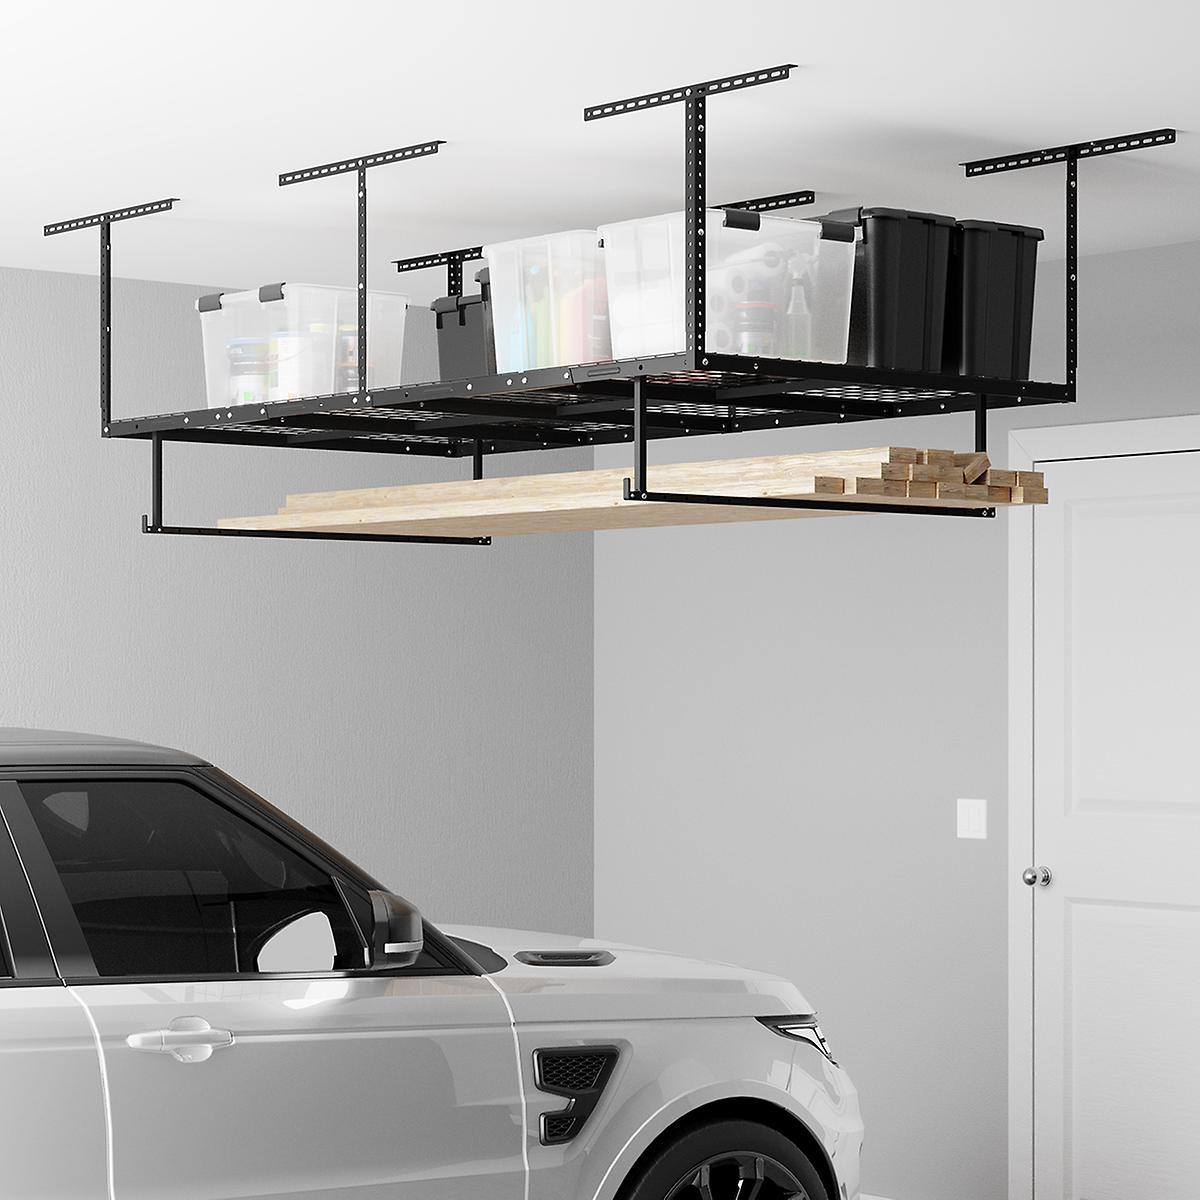 Ceiling Rack Set Of 2 The Container Store